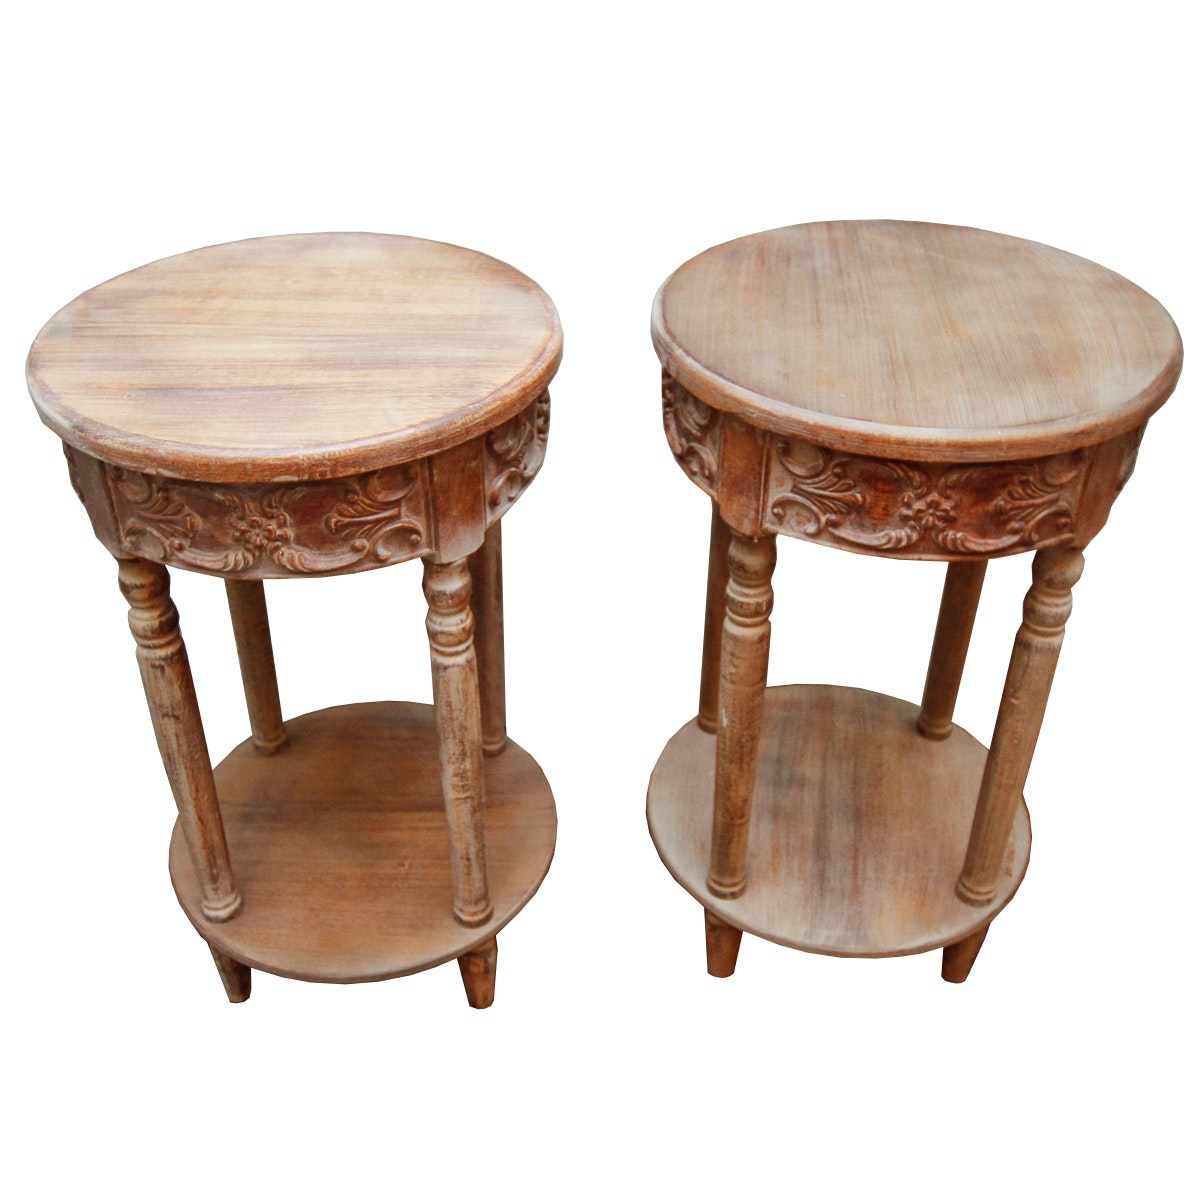 Pair of End Tables by The Design House